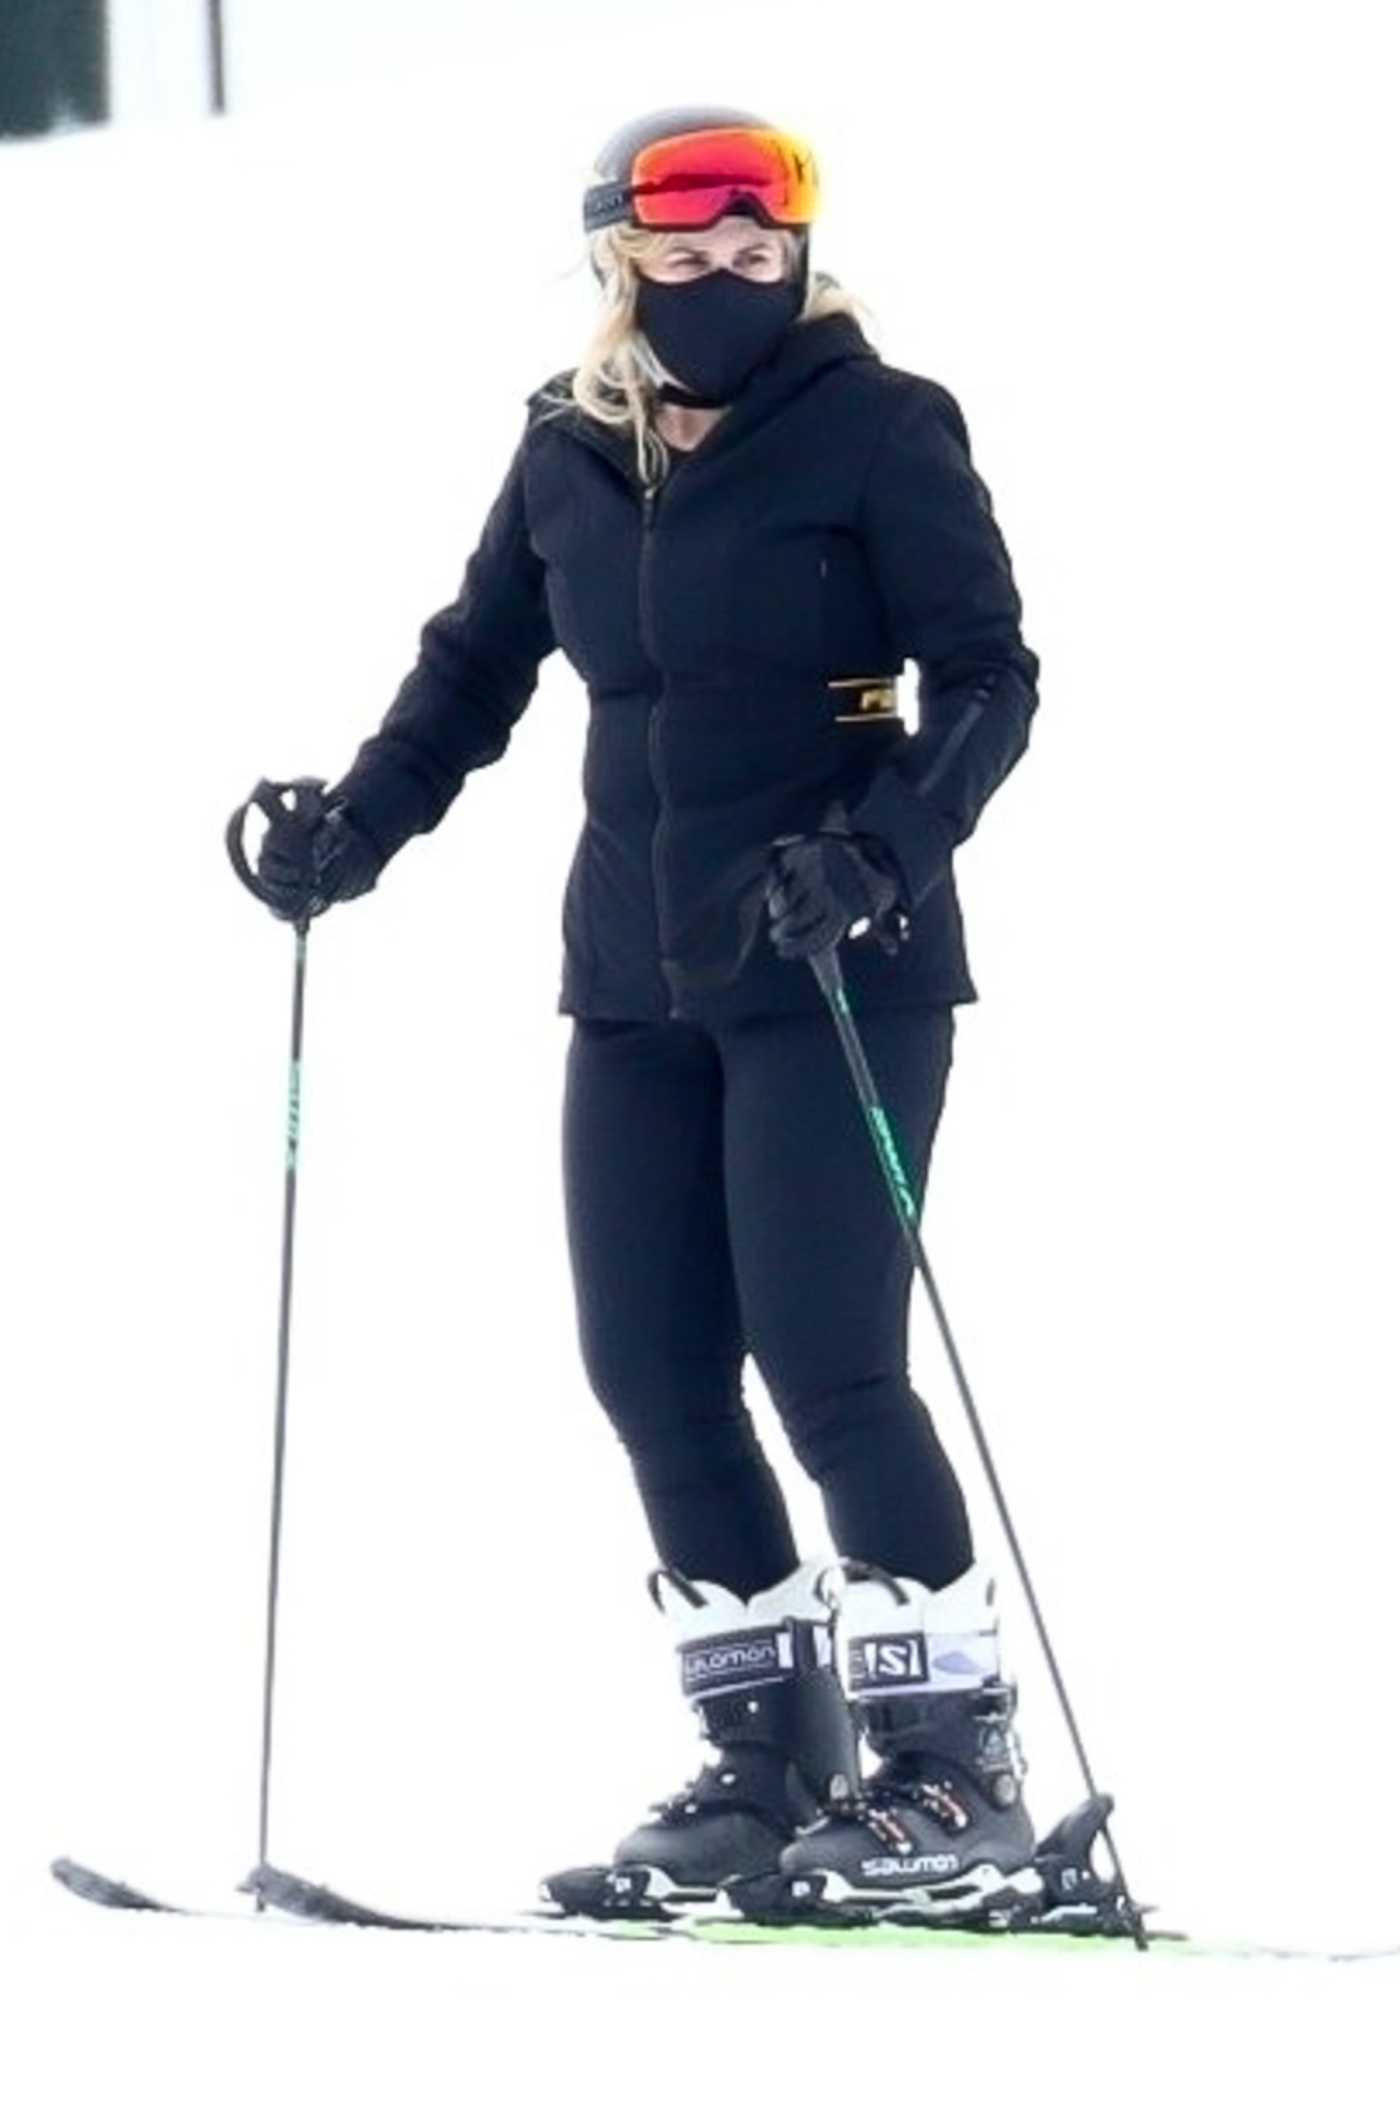 Rebel Wilson in a Black Outfit Goes Skiing in Aspen 12/20/2020